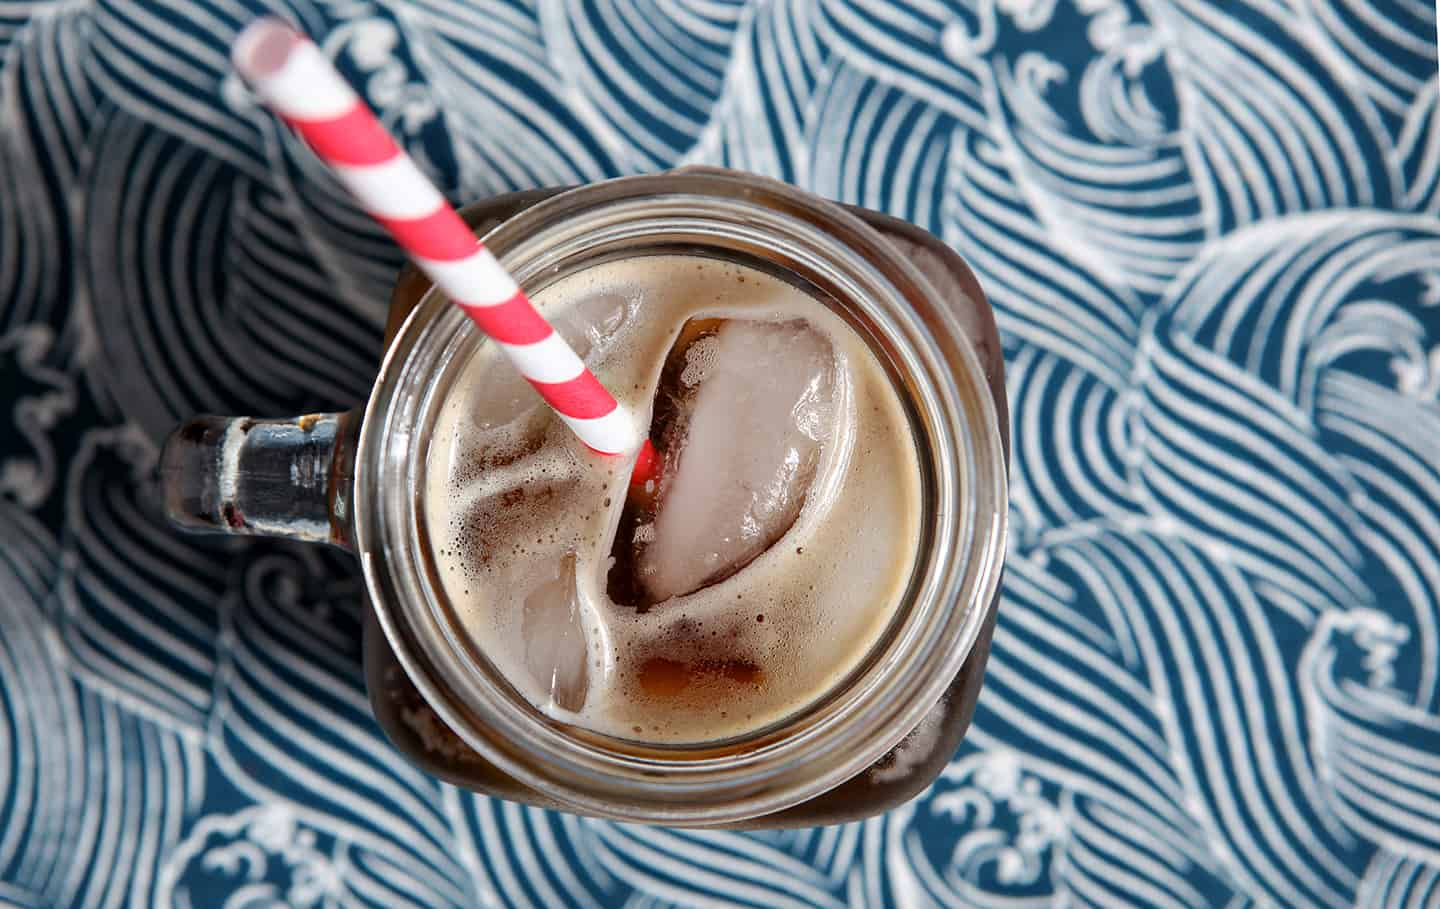 An overhead of the Boyfriend Irish Coffee in a mason jar glass, shown on a patterned blue napkin